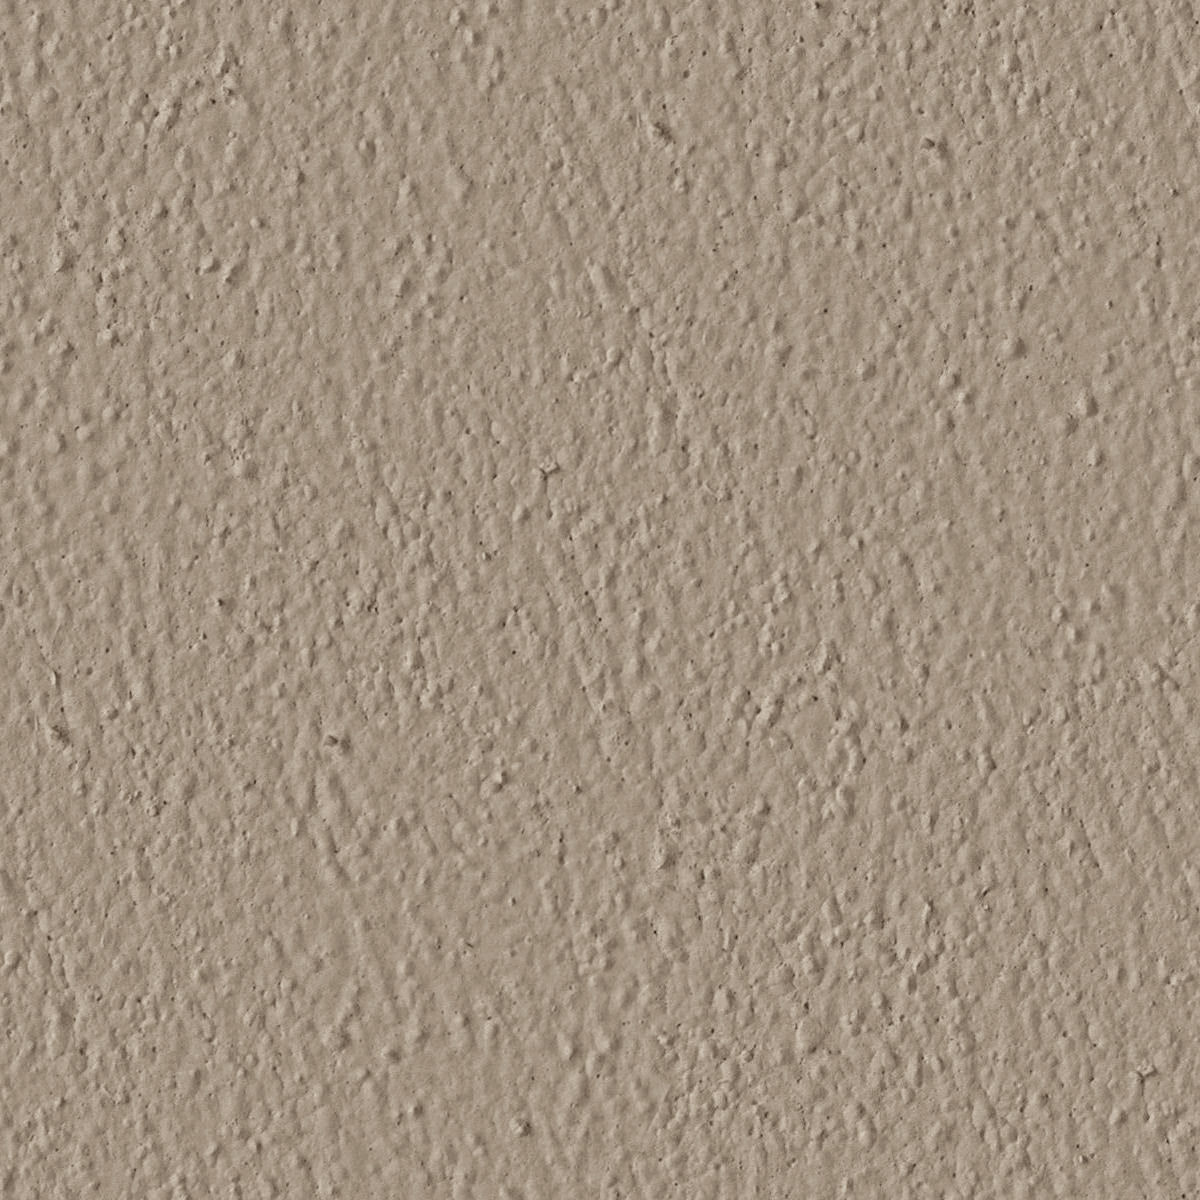 Wonderful High Resolution Seamless Textures: Tileable Stucco Wall Texture #15 MW54